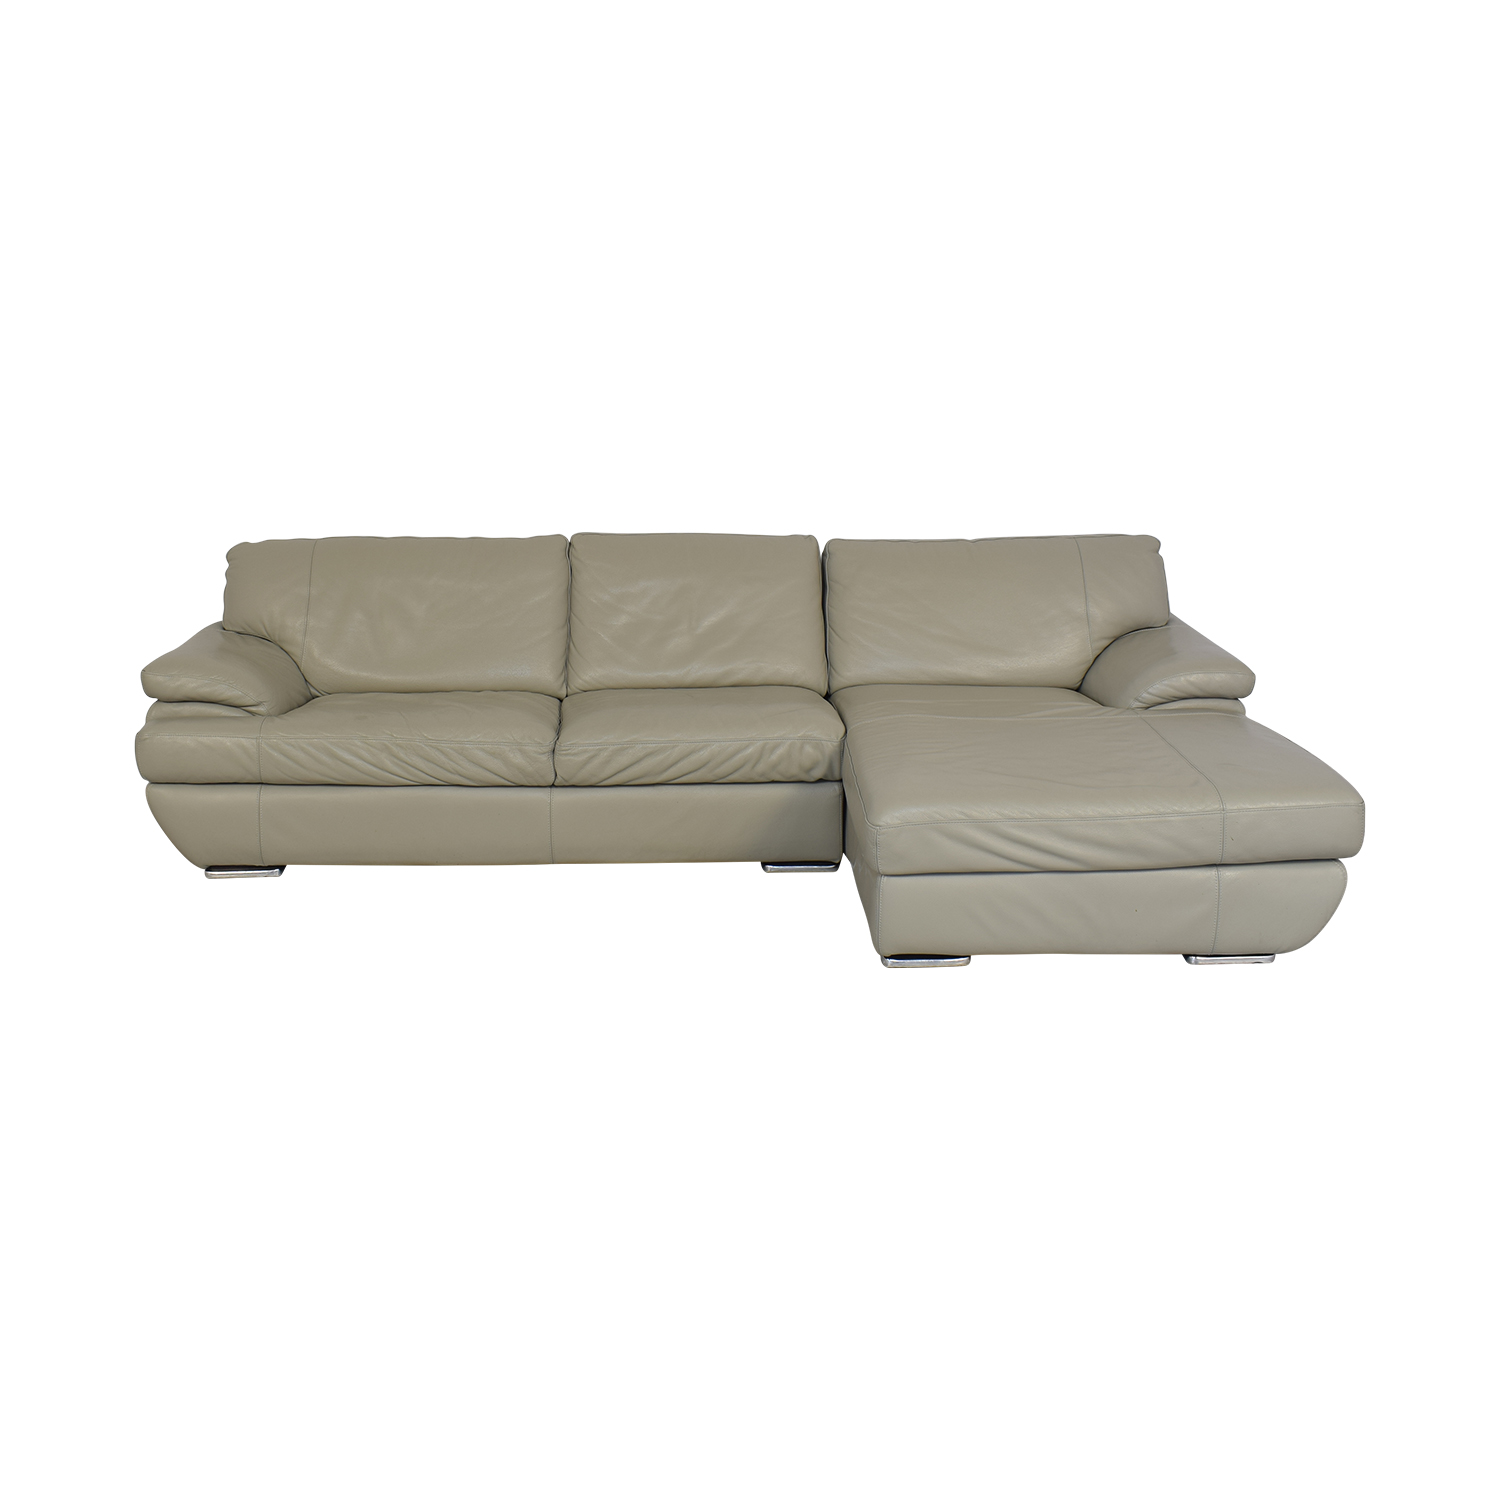 Chateau d'Ax Chateau d'Ax Sectional Sofa with Chaise